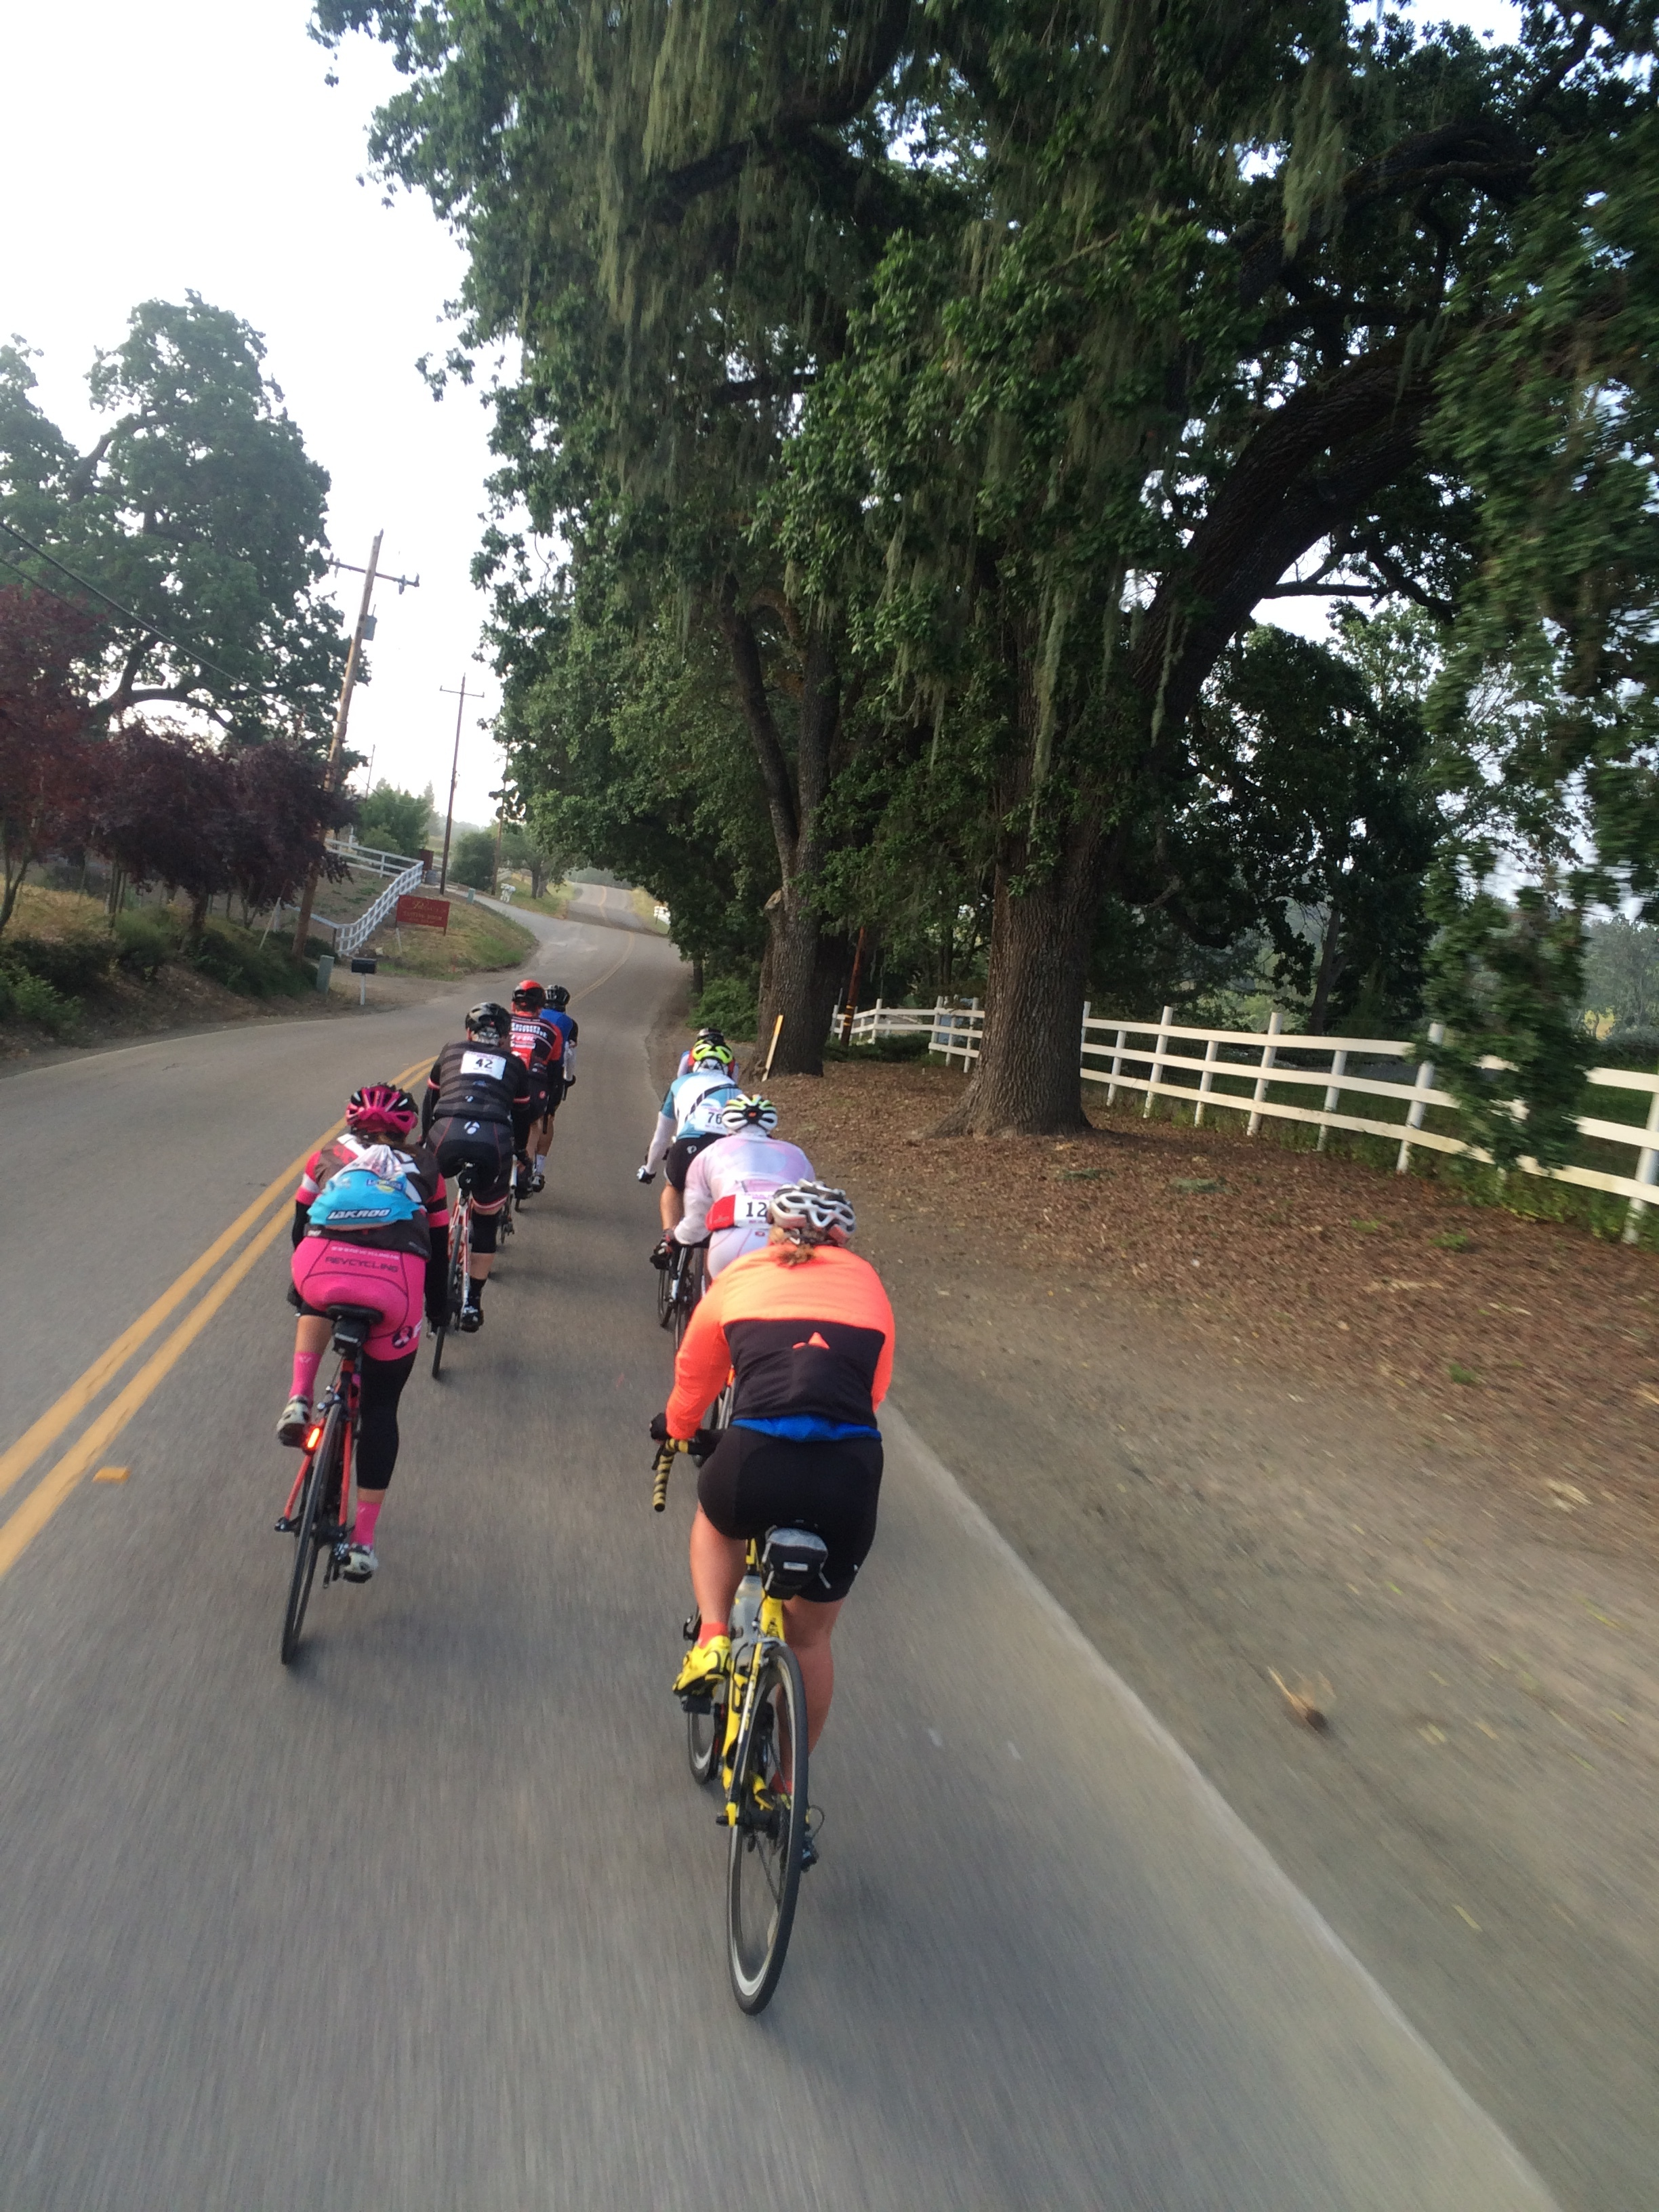 Despite a wrong turn, I'm riding with the lead group, and it's fun! :-)